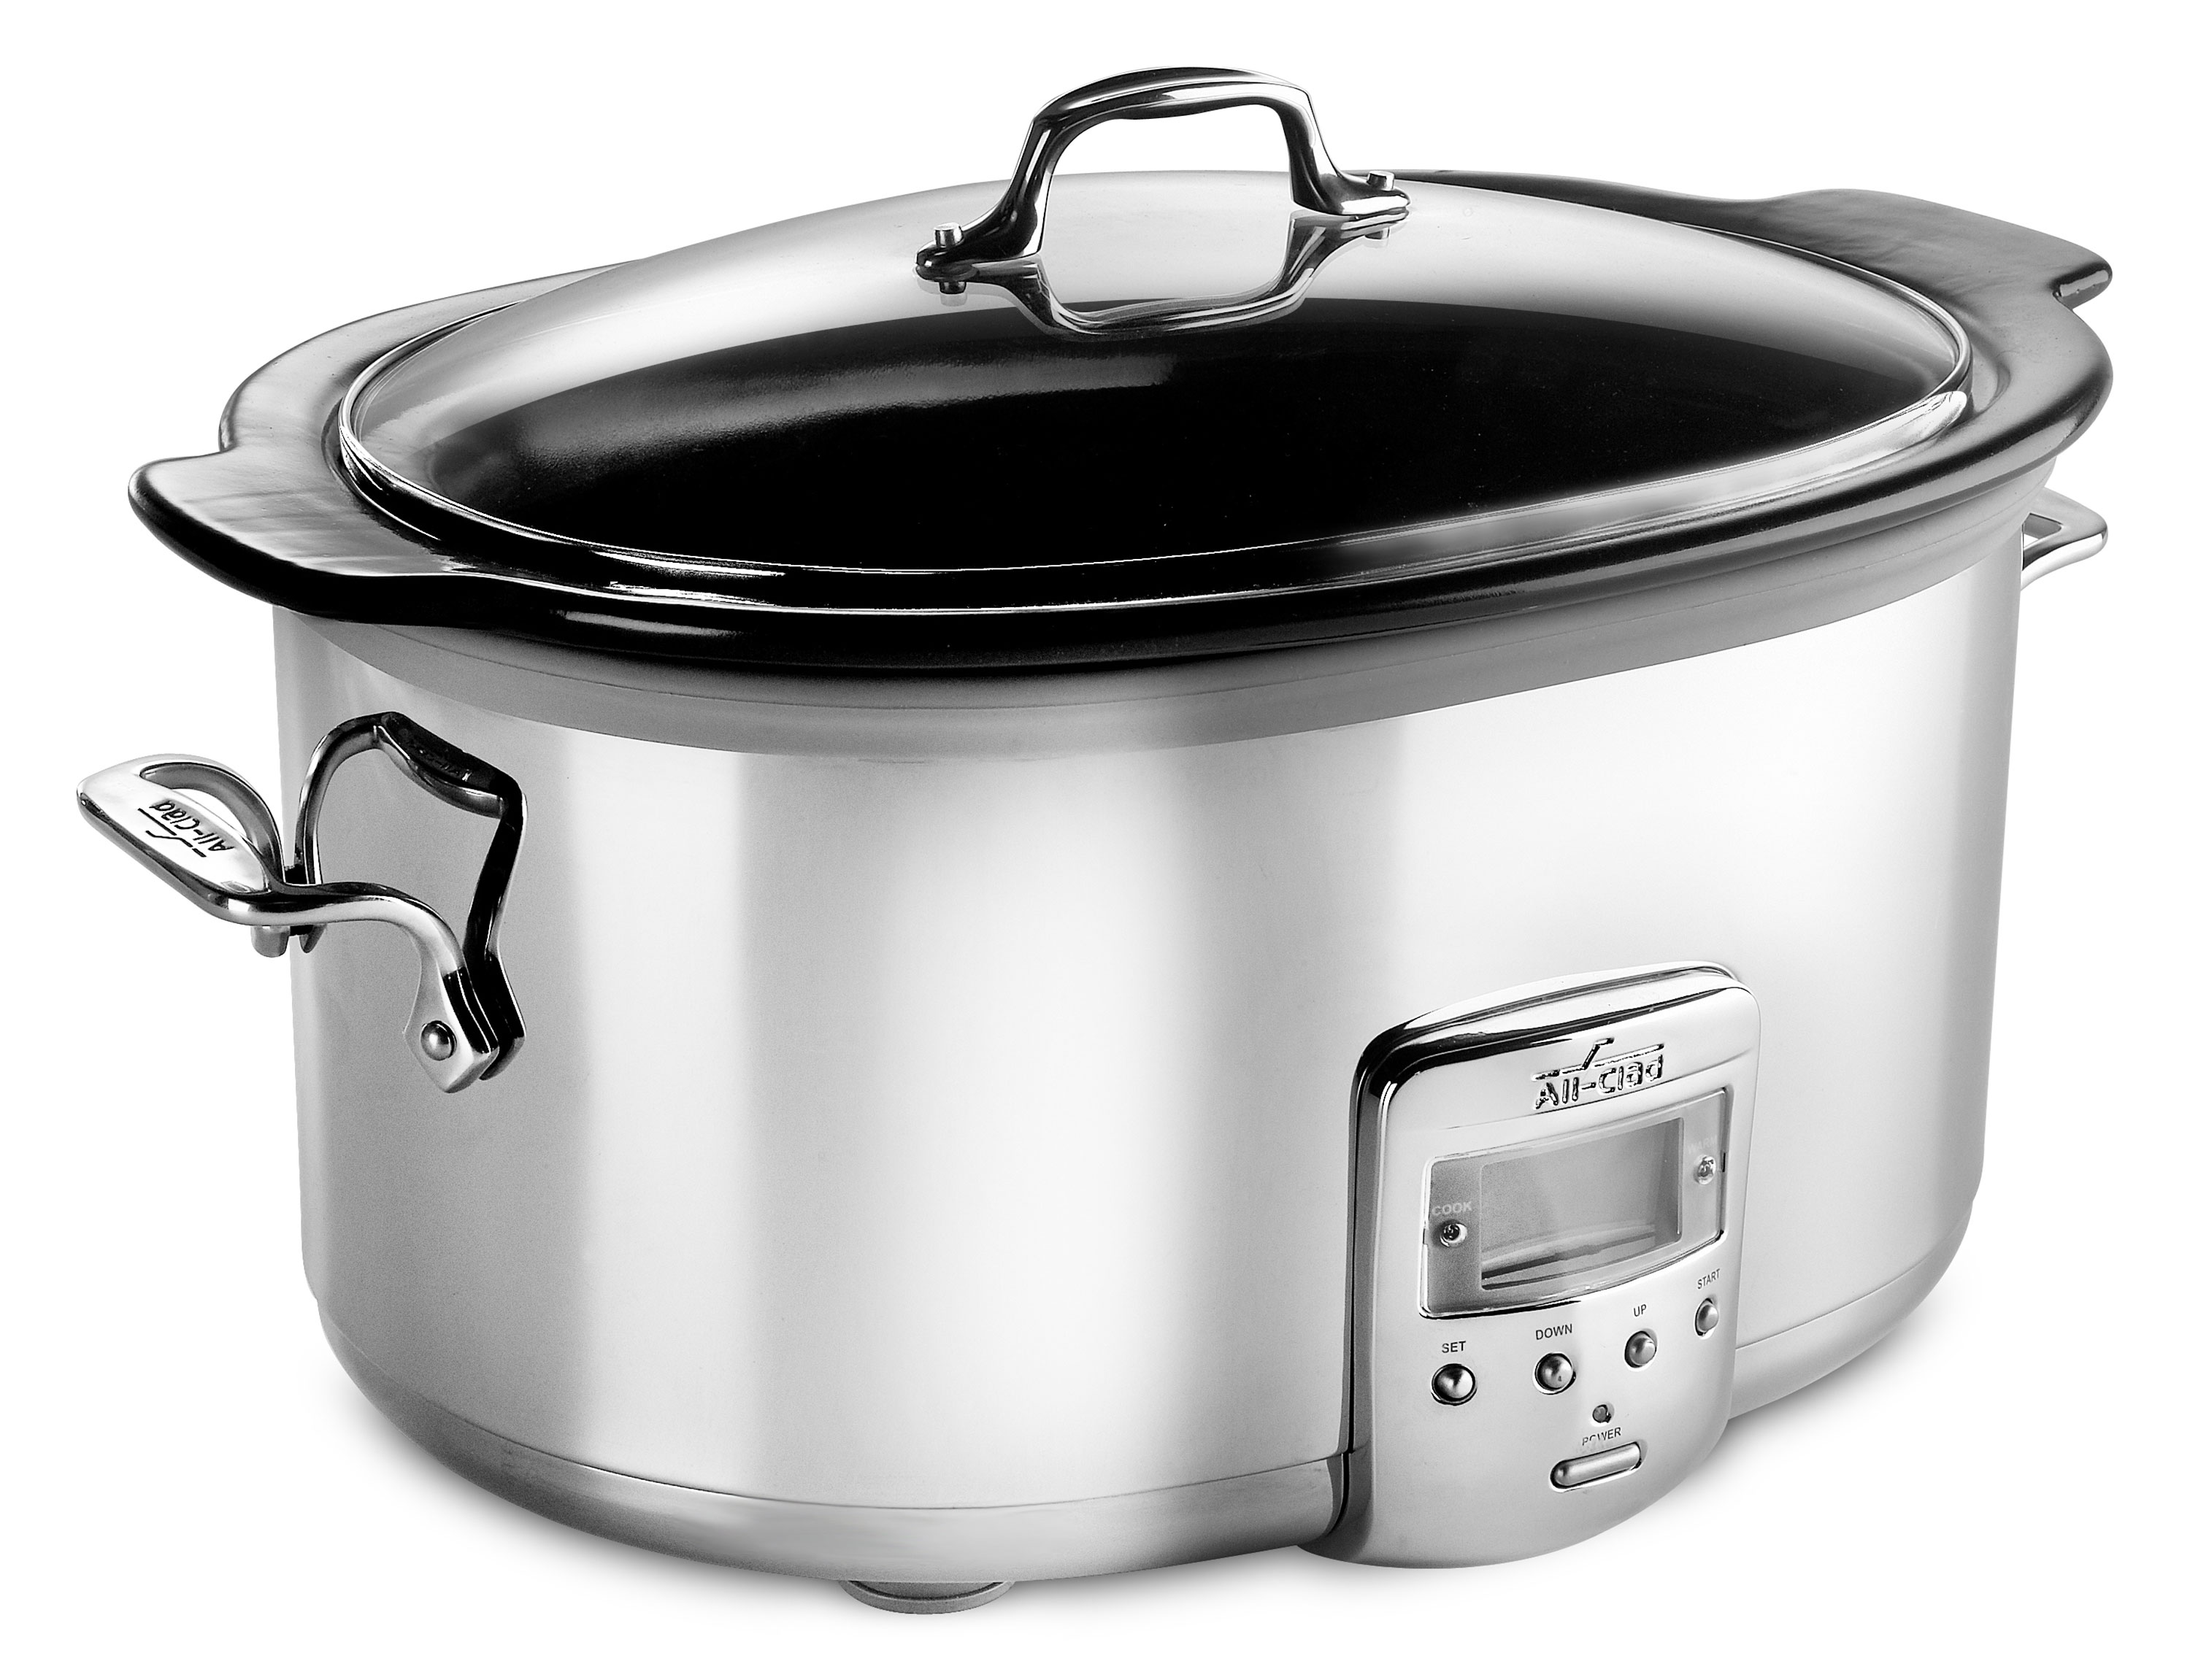 All Clad 6 5 Quart Stainless Steel Electric Slow Cooker